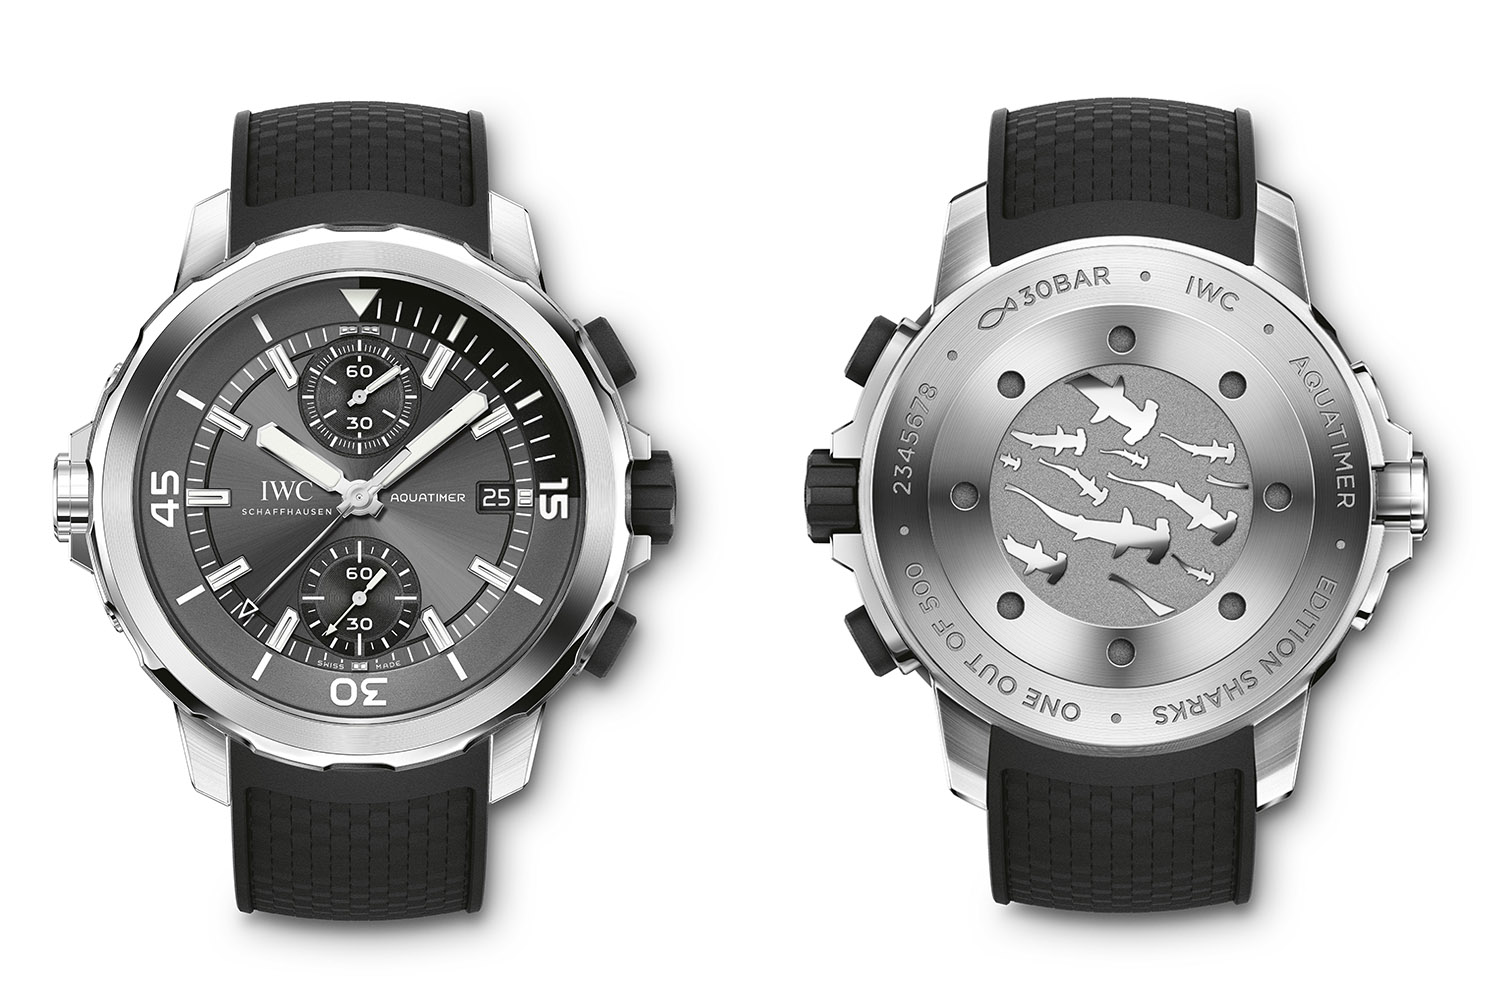 iwc-aquatimer-chronograph-edition-sharks-1.jpg